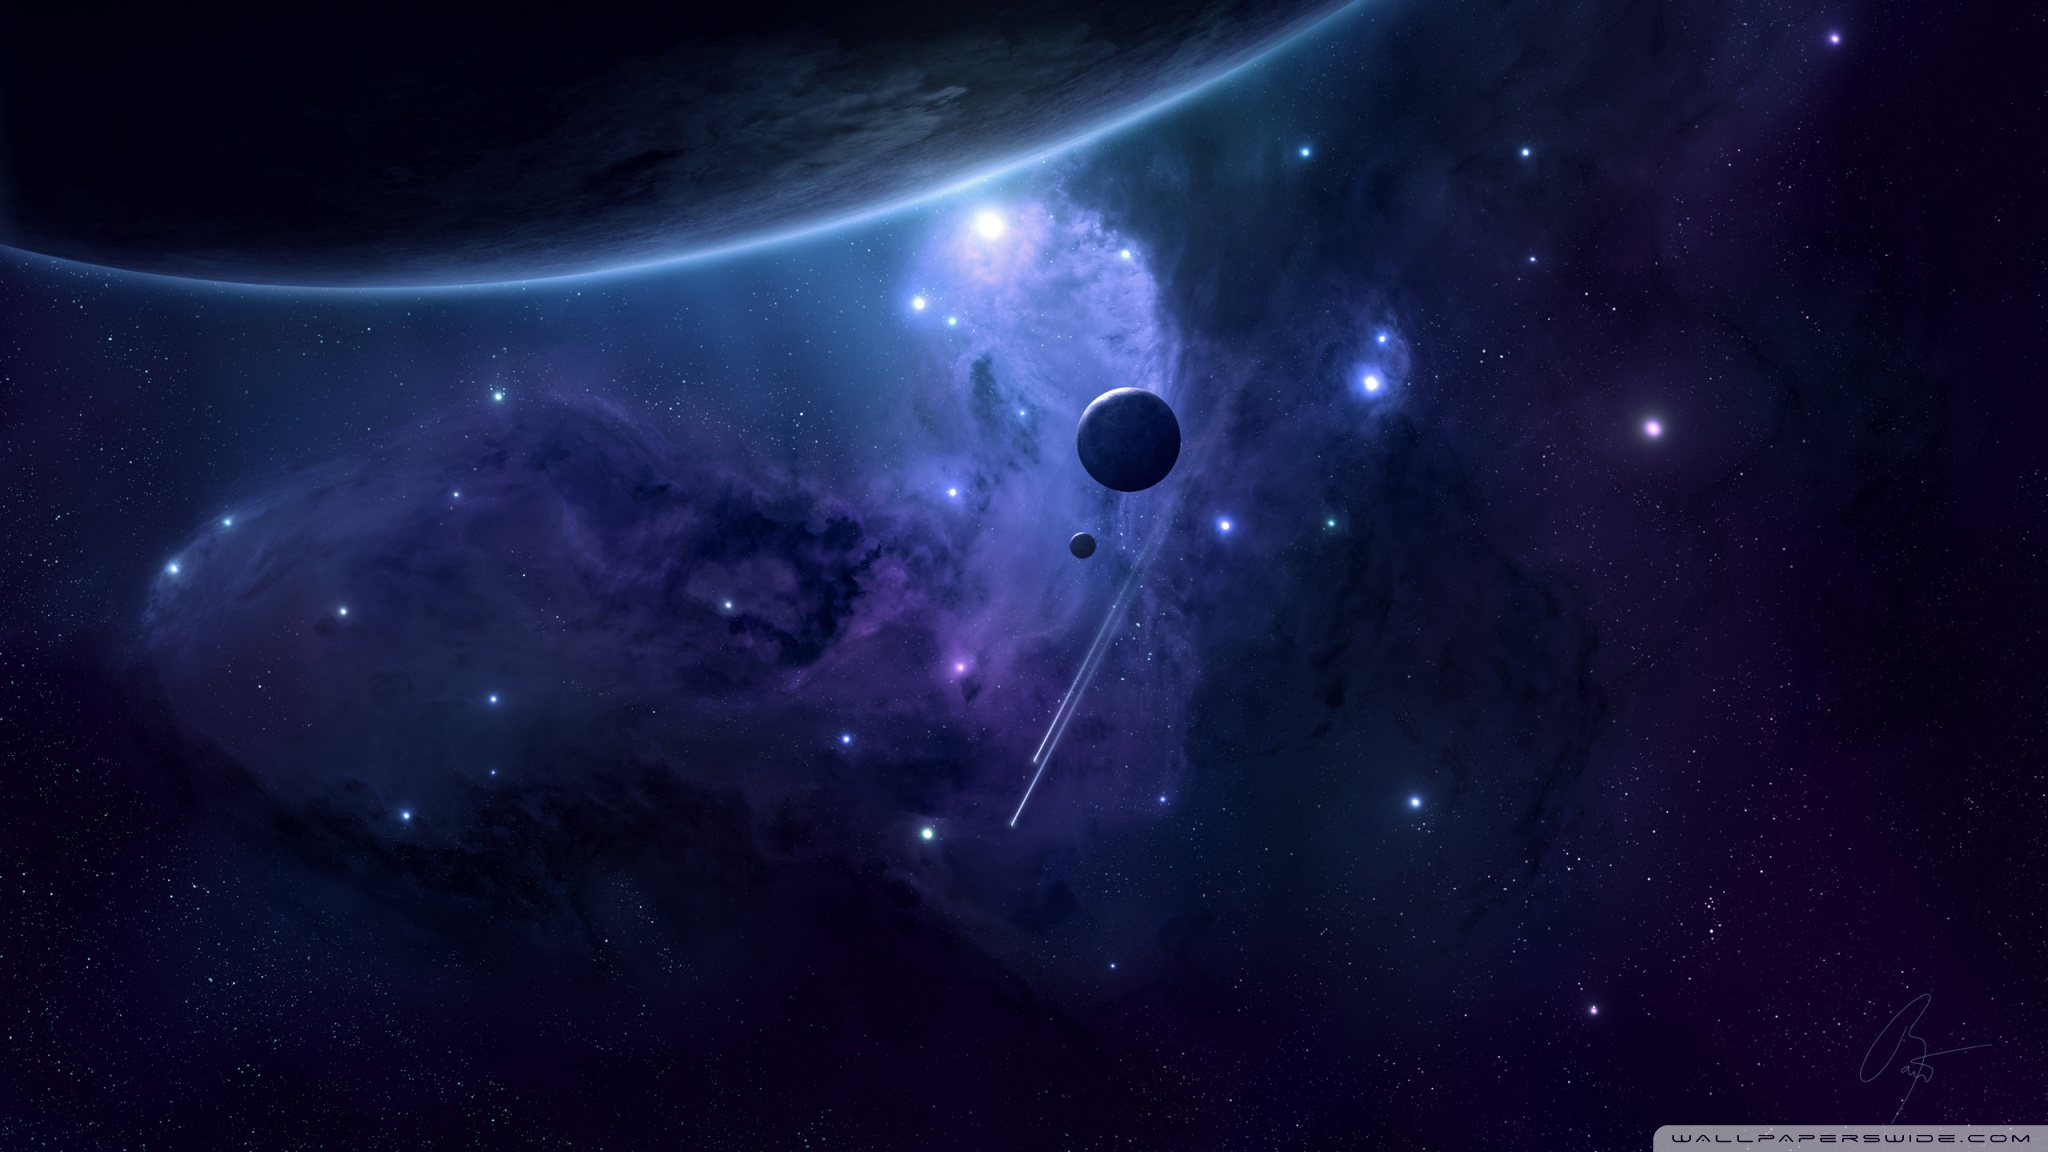 Hd 16 - - Galaxy Note 2 Space , HD Wallpaper & Backgrounds